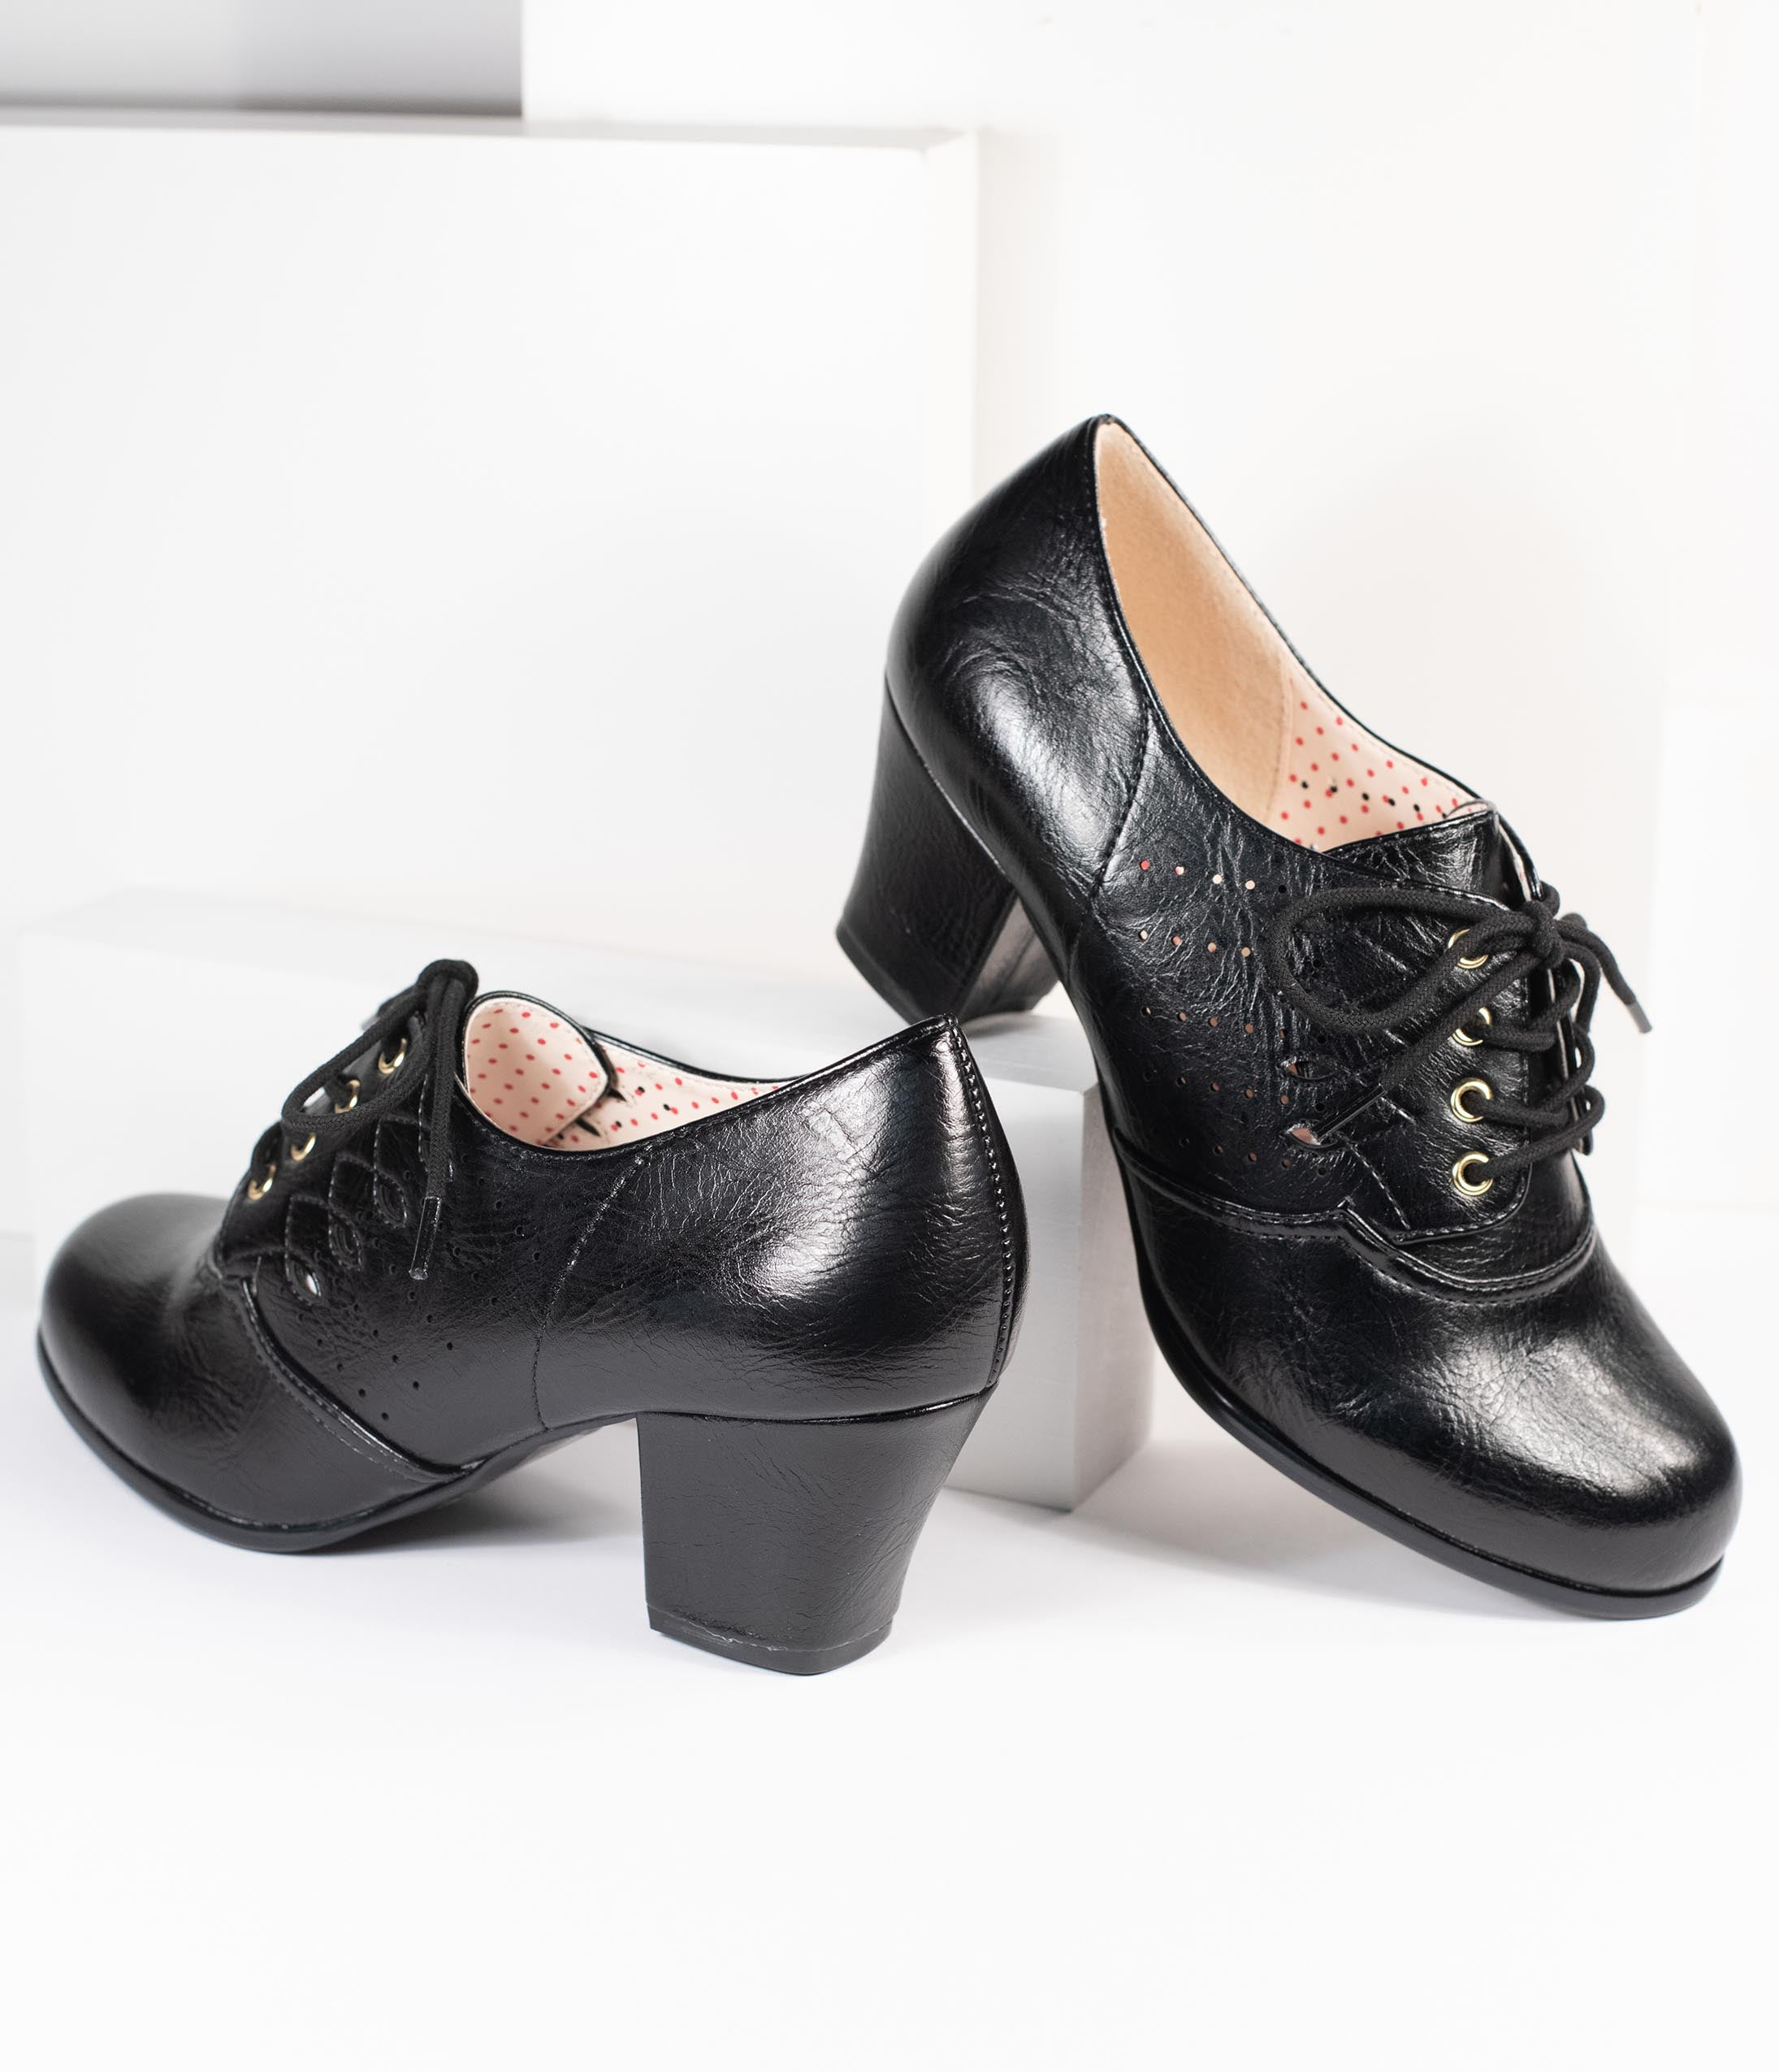 1920s Fashion & Clothing | Roaring 20s Attire B.a.i.t. Black Leatherette Rosie Oxford Heel $74.00 AT vintagedancer.com